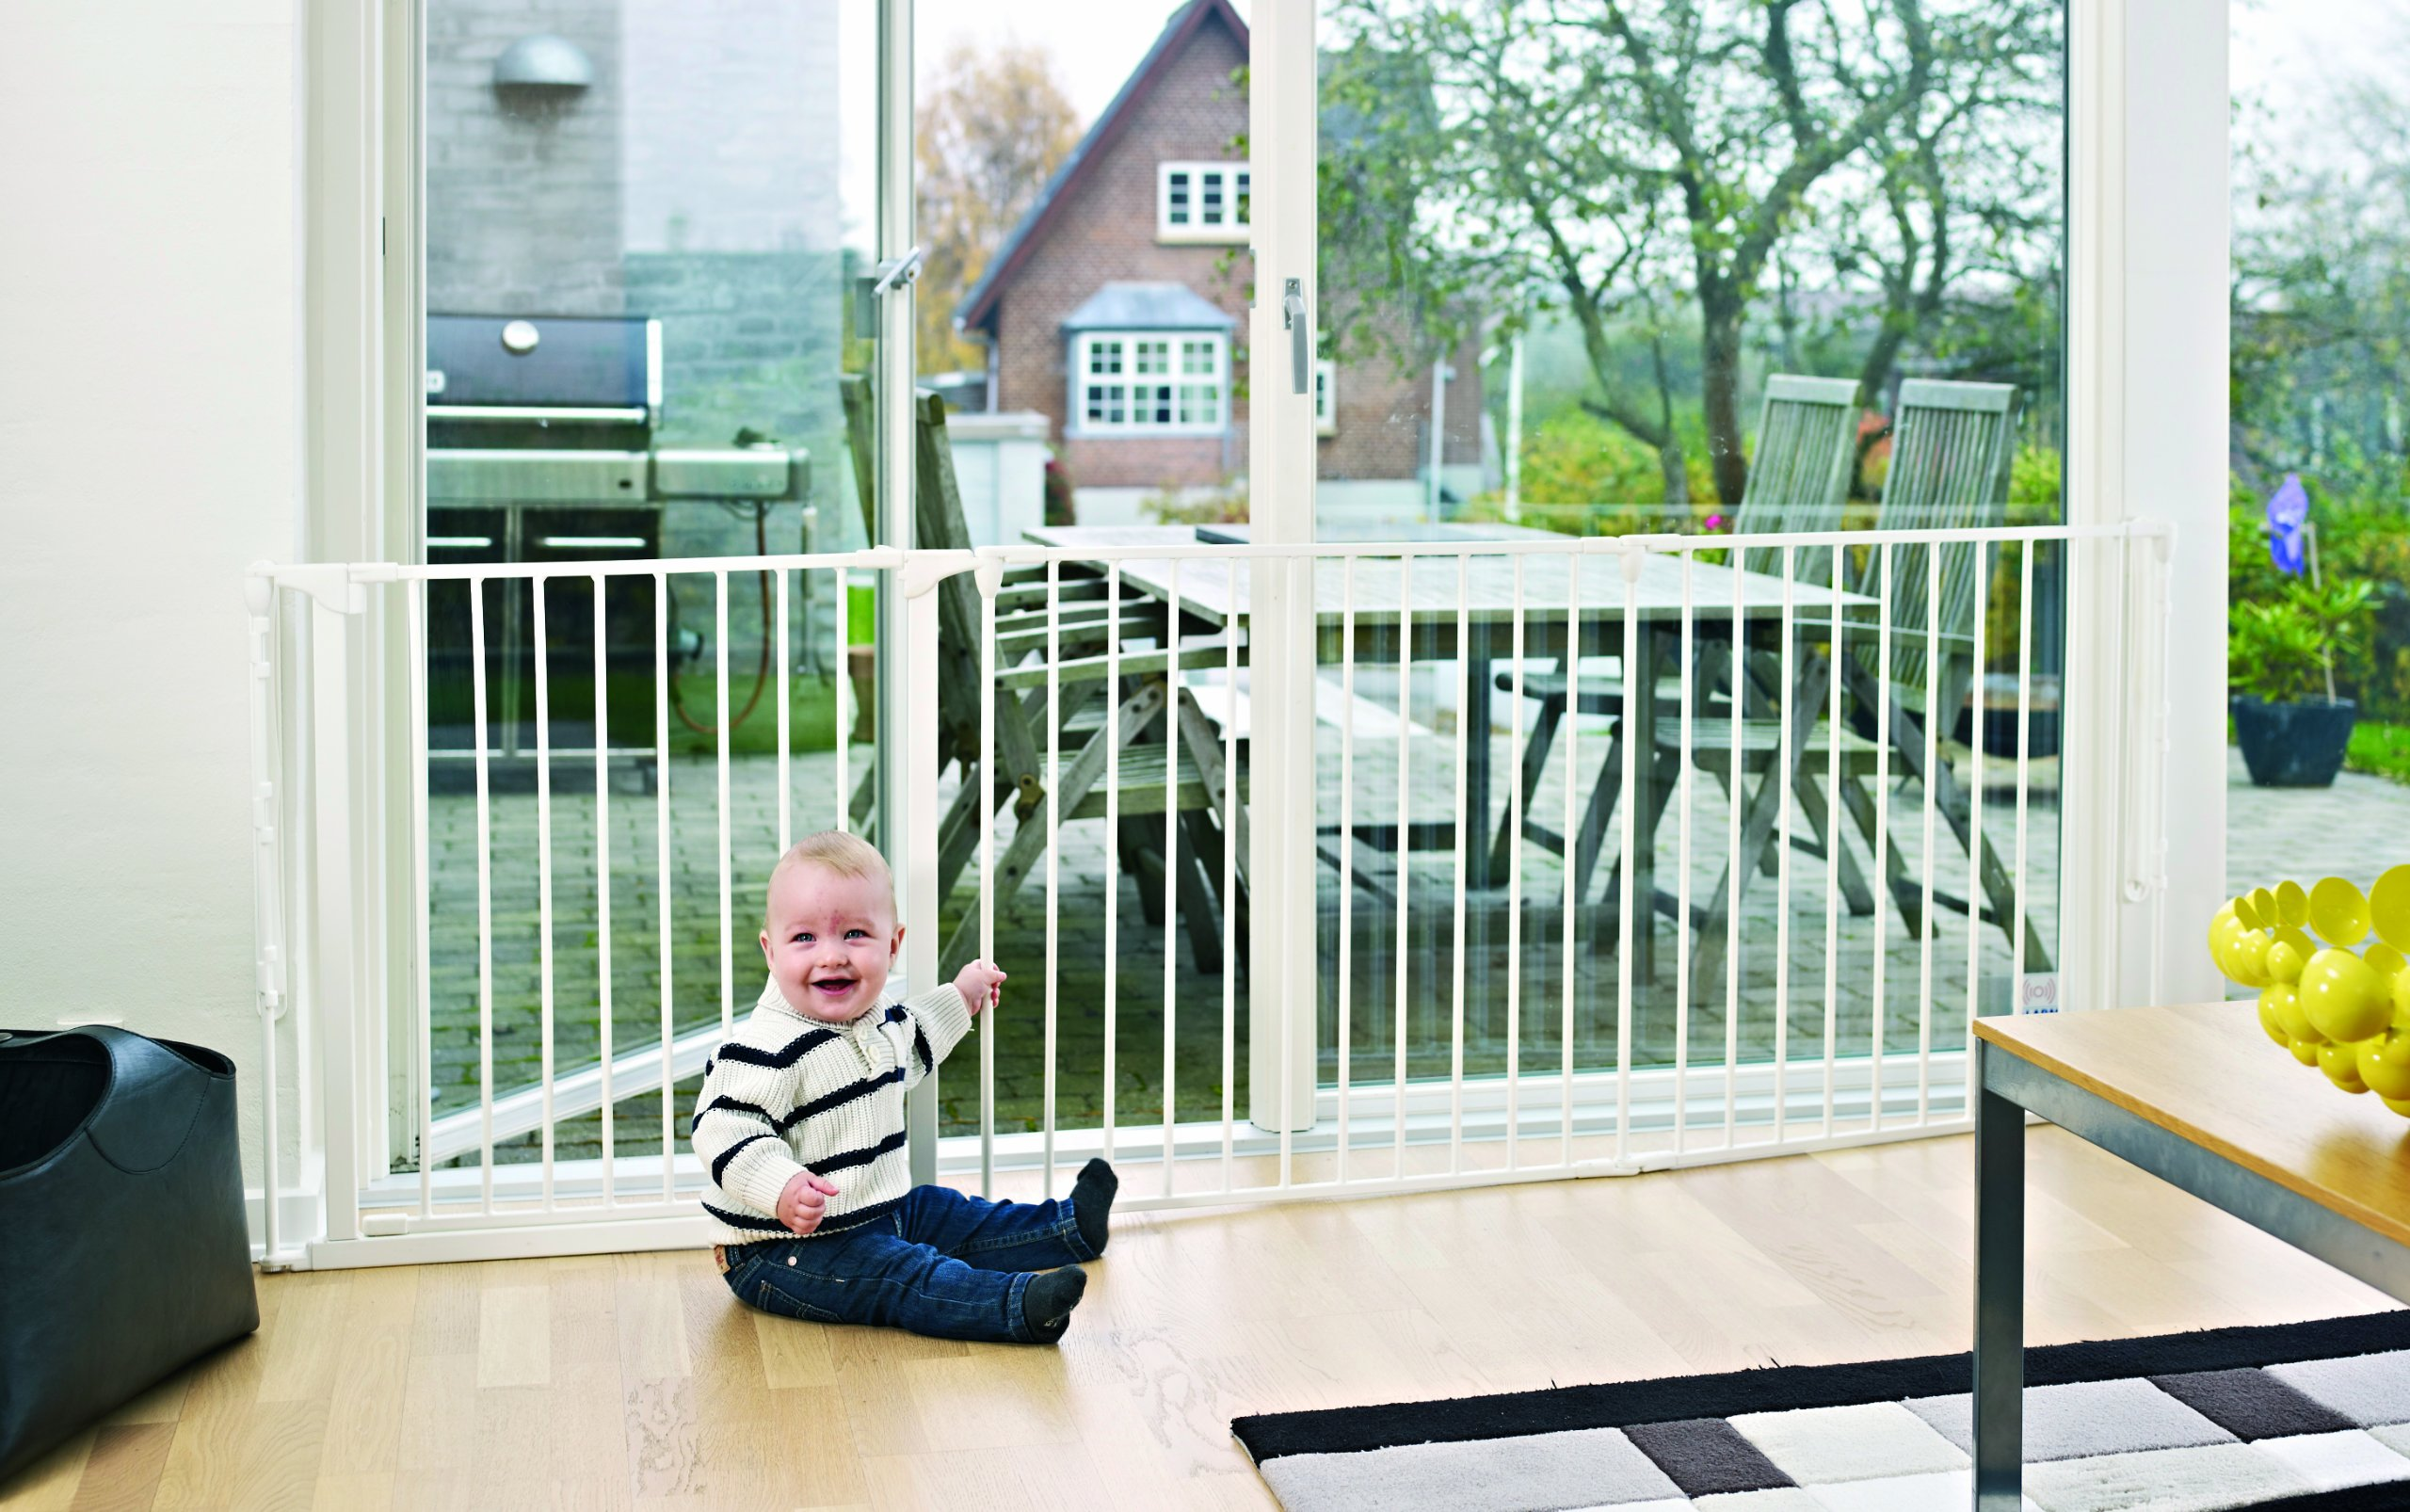 BabyDan Configure (Large 90-223cm, White)  Only configure system fulfilling newest European safety standard Multi purpose room divider and gate for wider openings Flexible and easy to fit 4